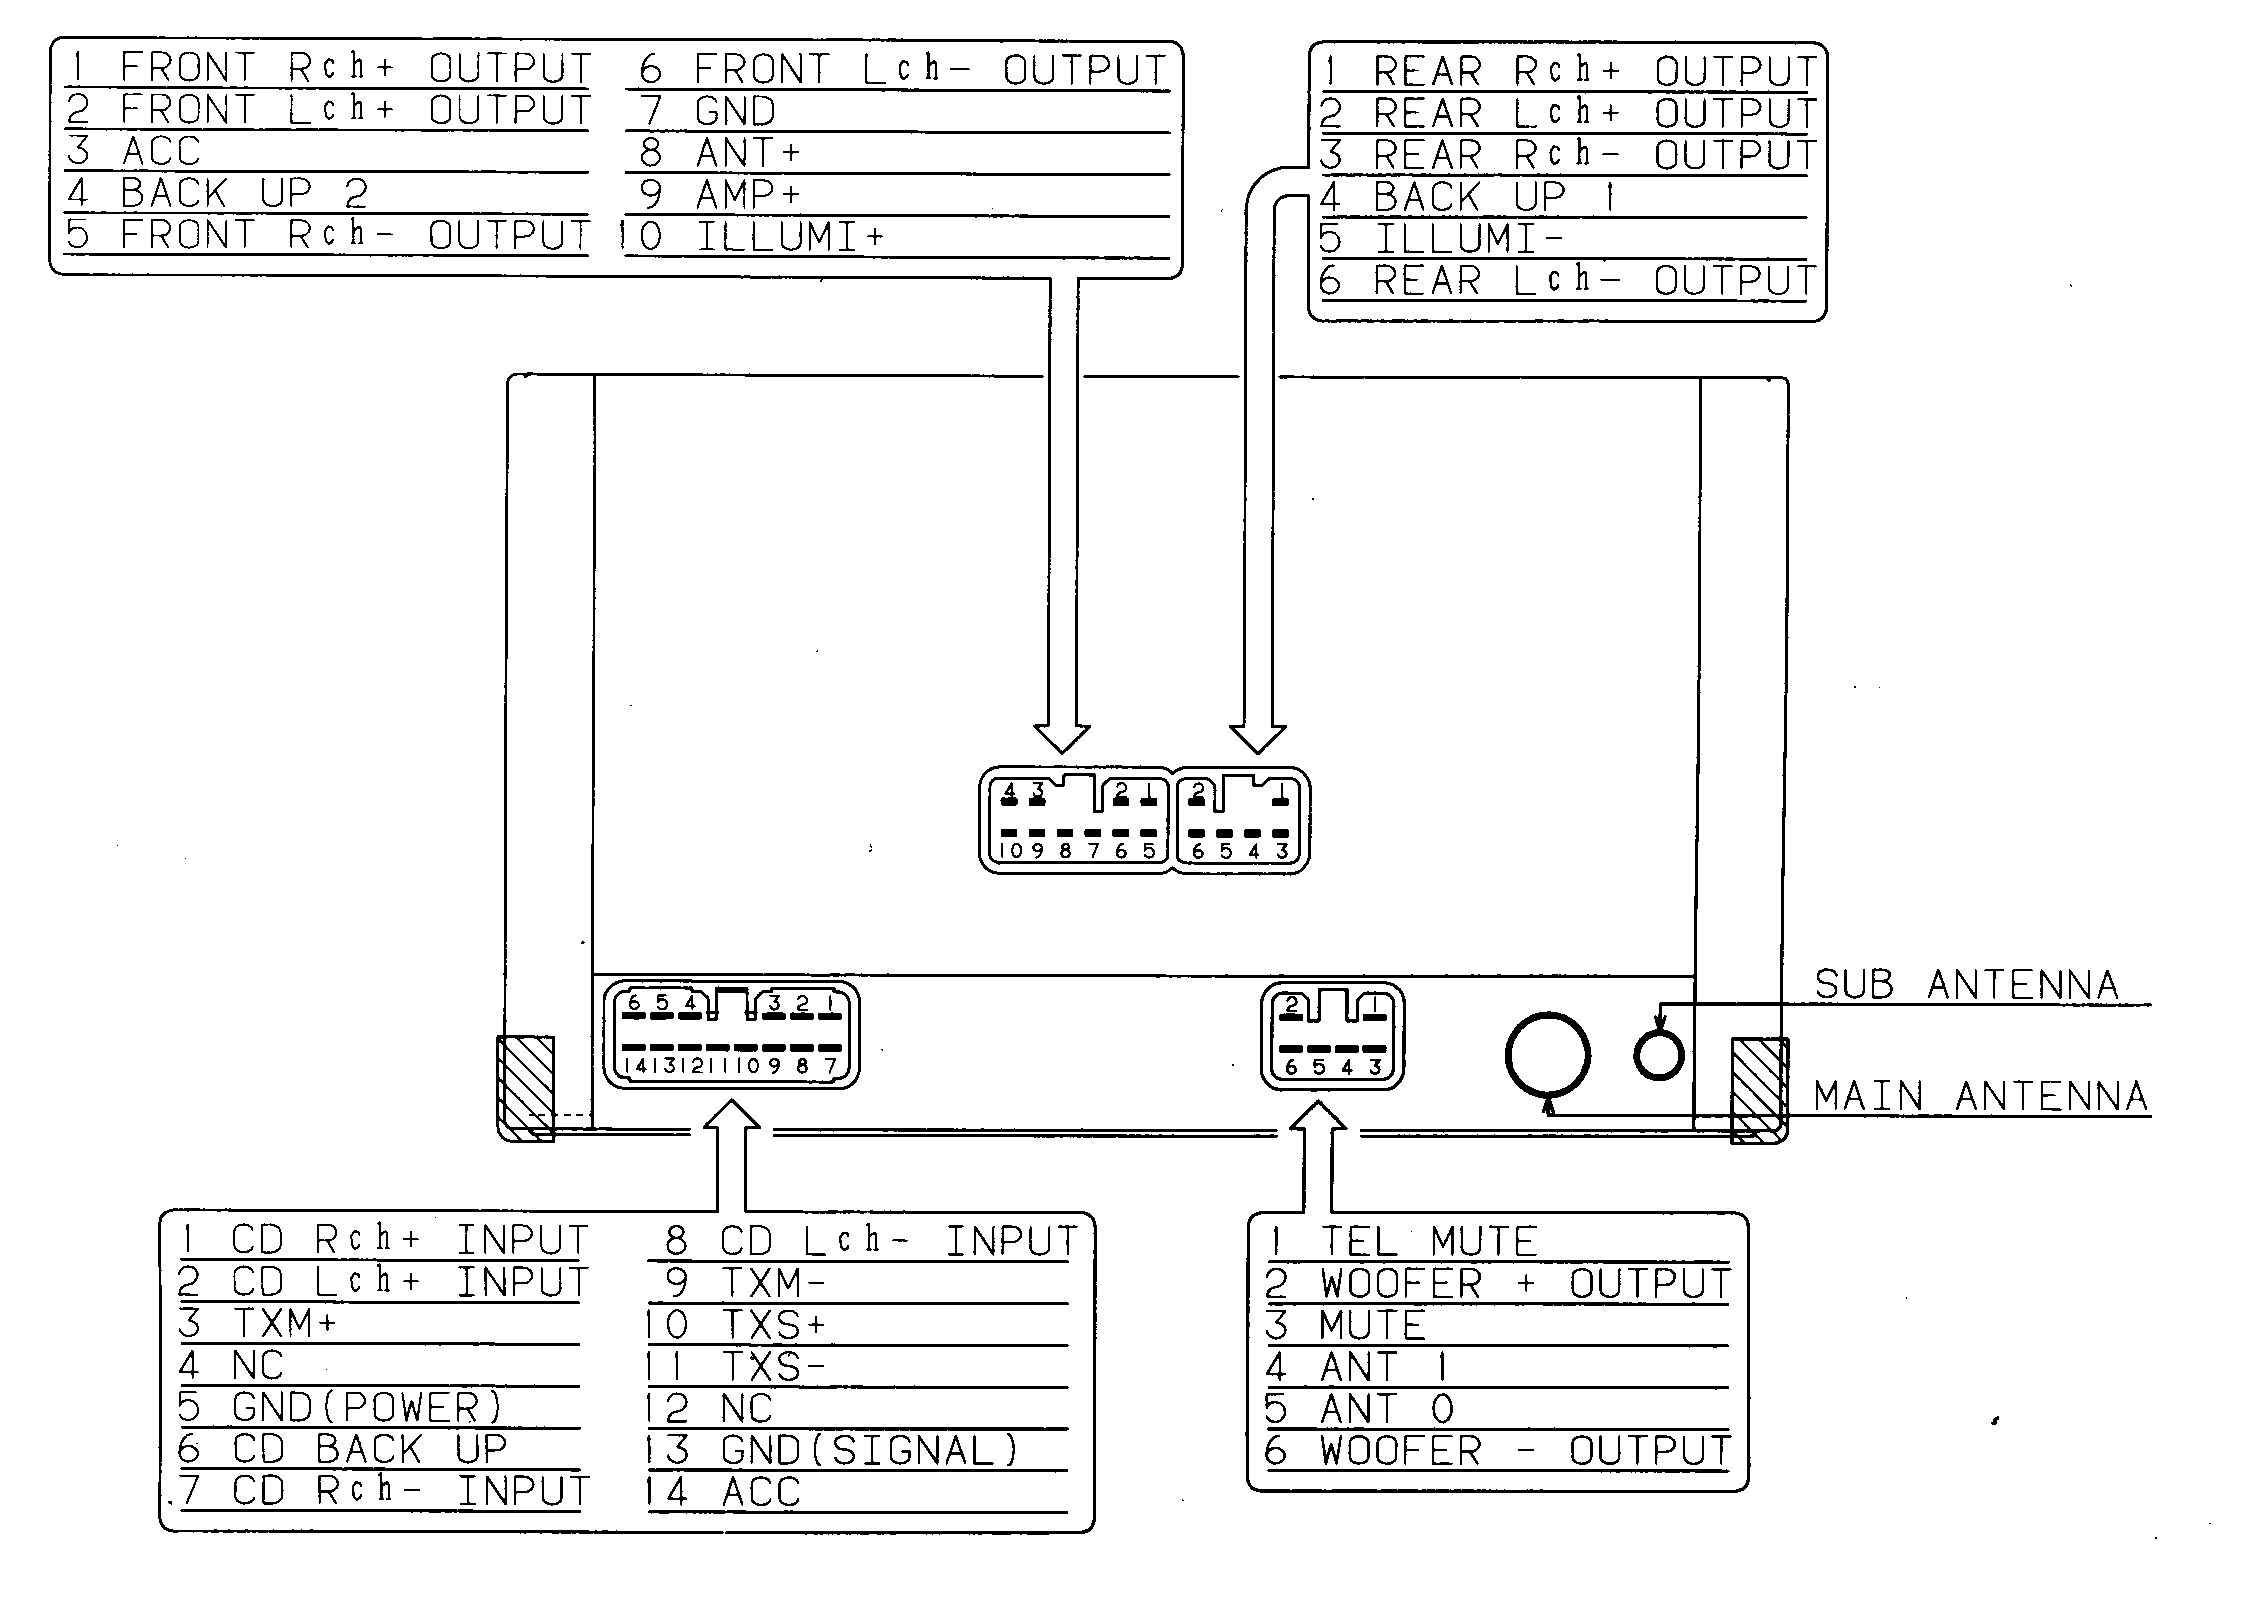 WireHarnessLexus121001 car audio wire diagram codes lexus factory car stereo repair Easy Wiring Diagrams at n-0.co